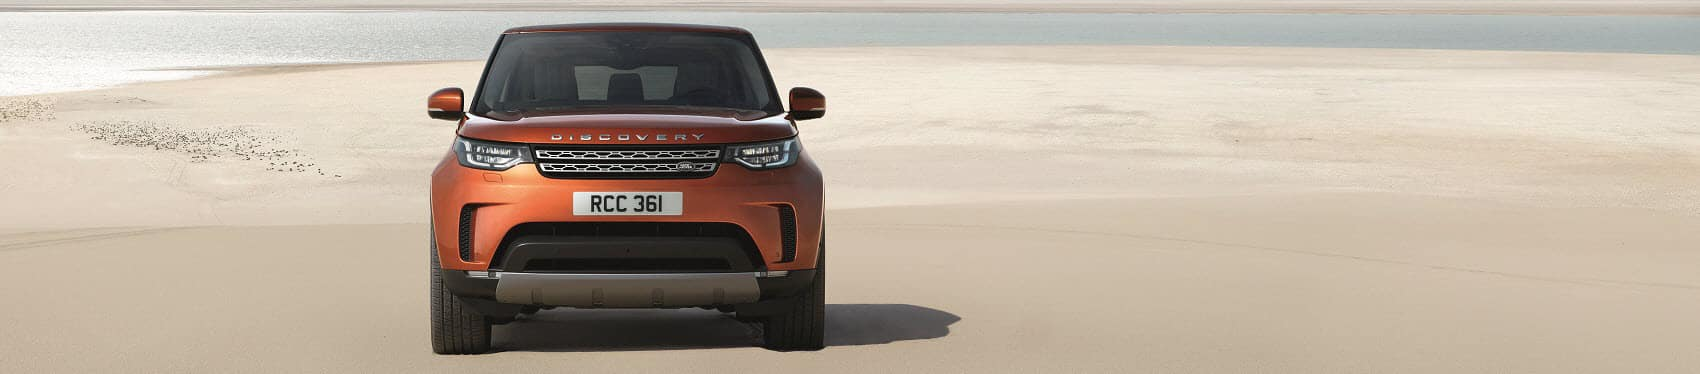 Land Rover Discovery Leasing near Edison NJ